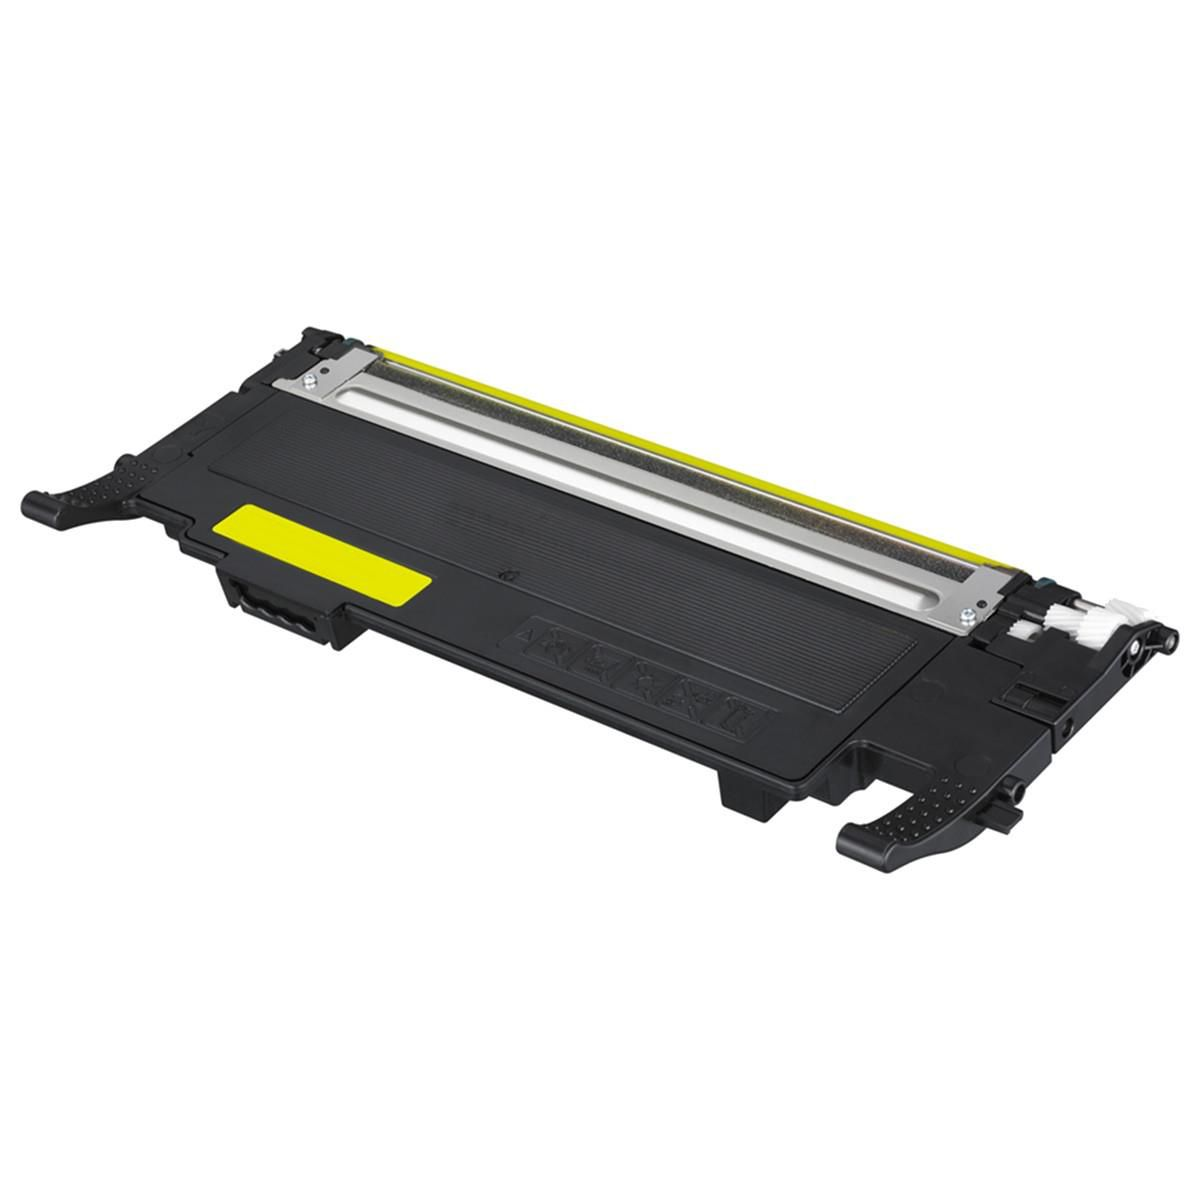 TONER COMPATIVEL SAMSUNG CLT404 YL - C430/C480 - BYQUALY